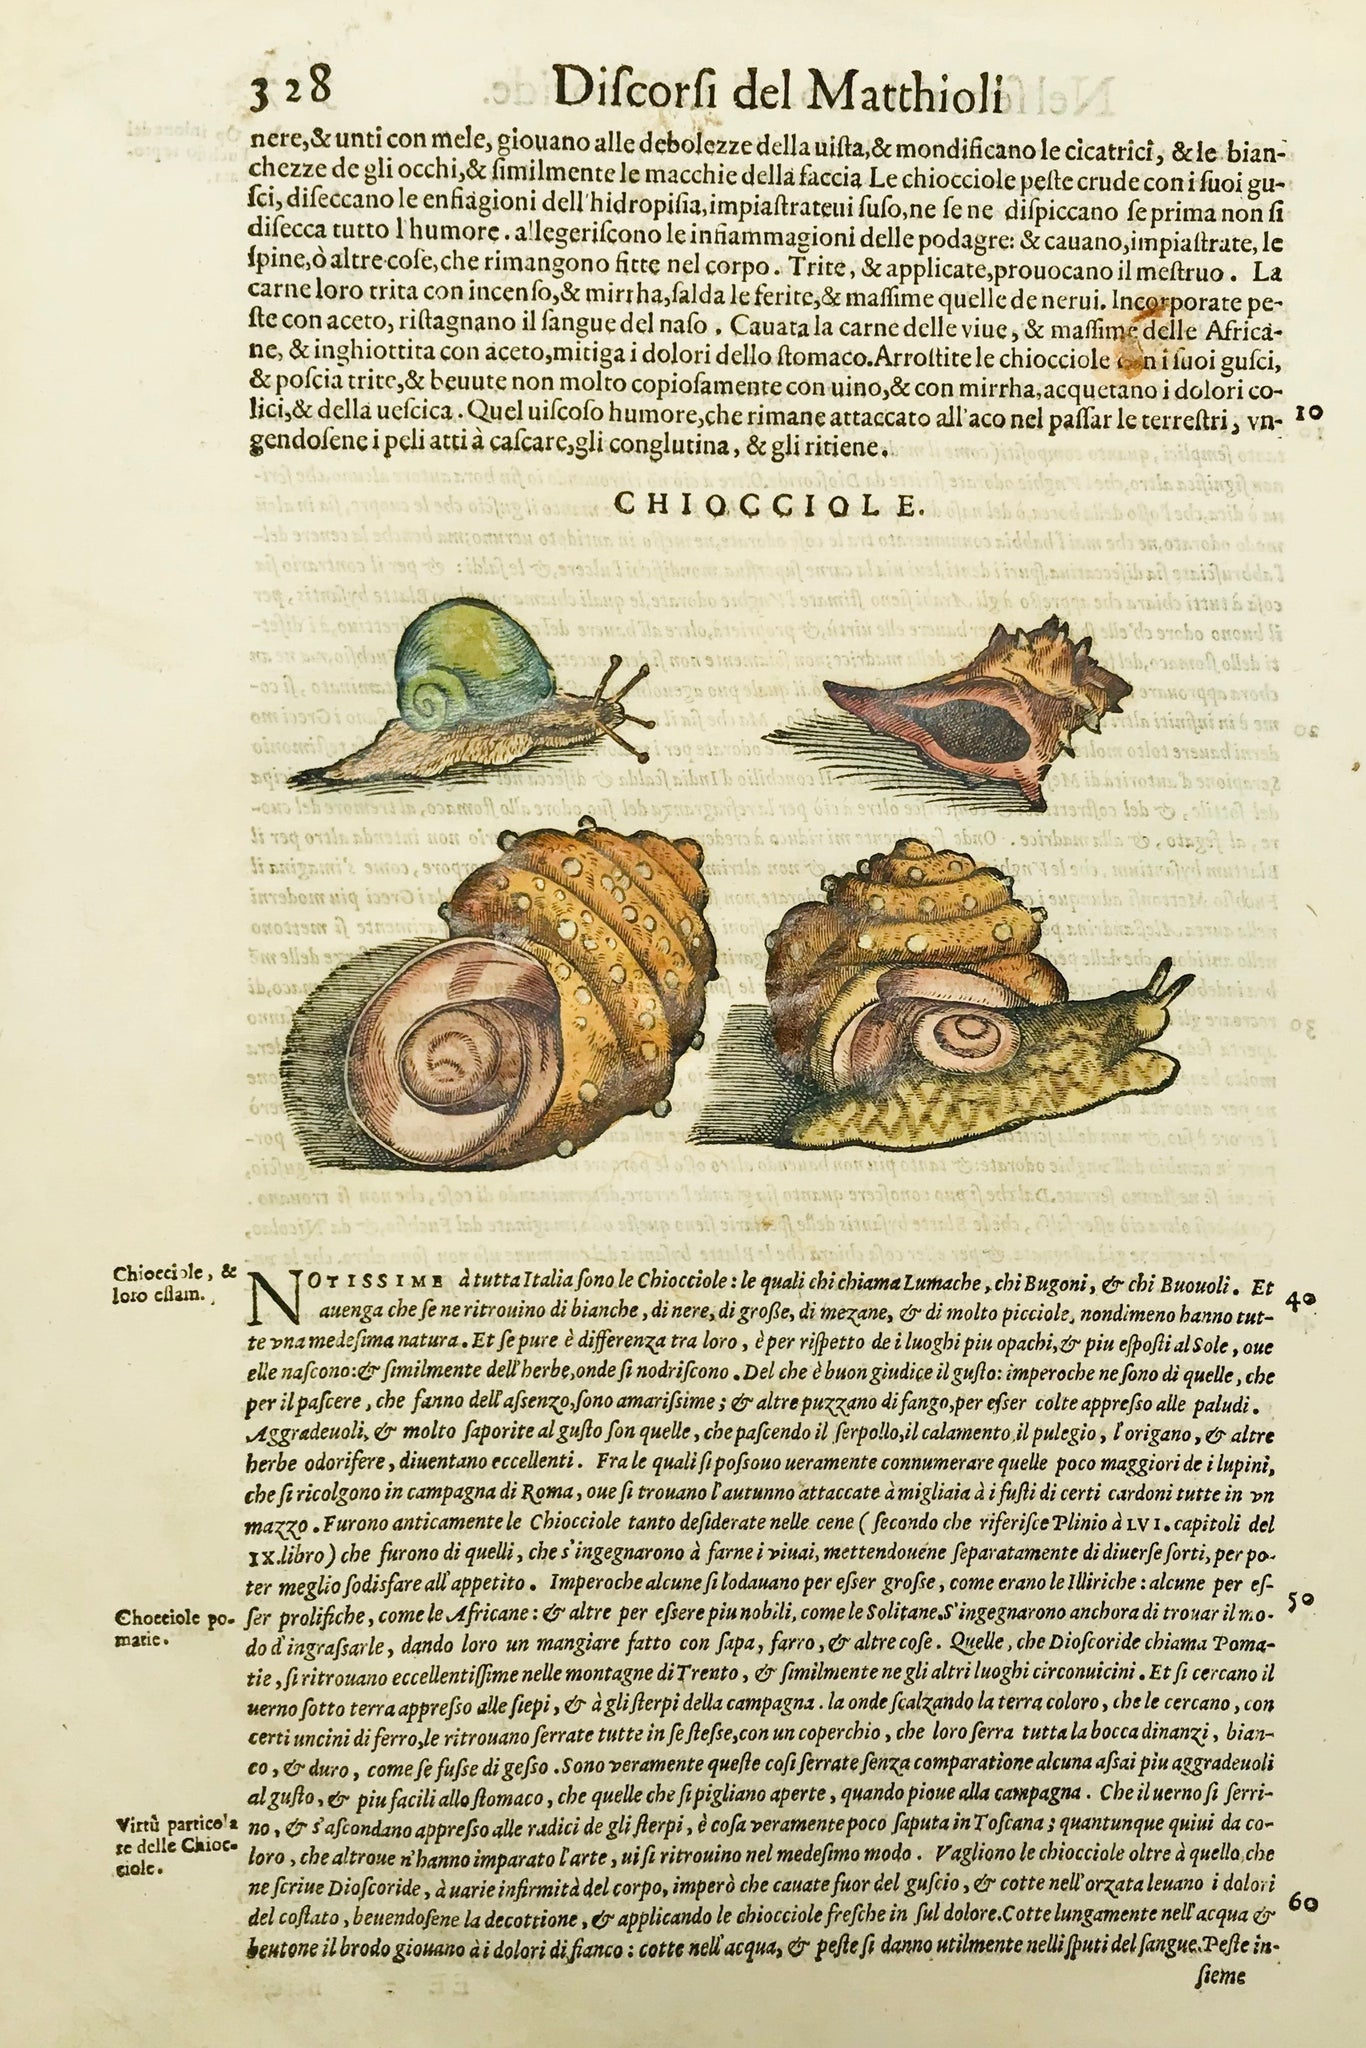 Discorsi del Matthioli  Chiocciole  Woodcut by Pietro Andrea Matthioli in the Italian edition published in 1568.